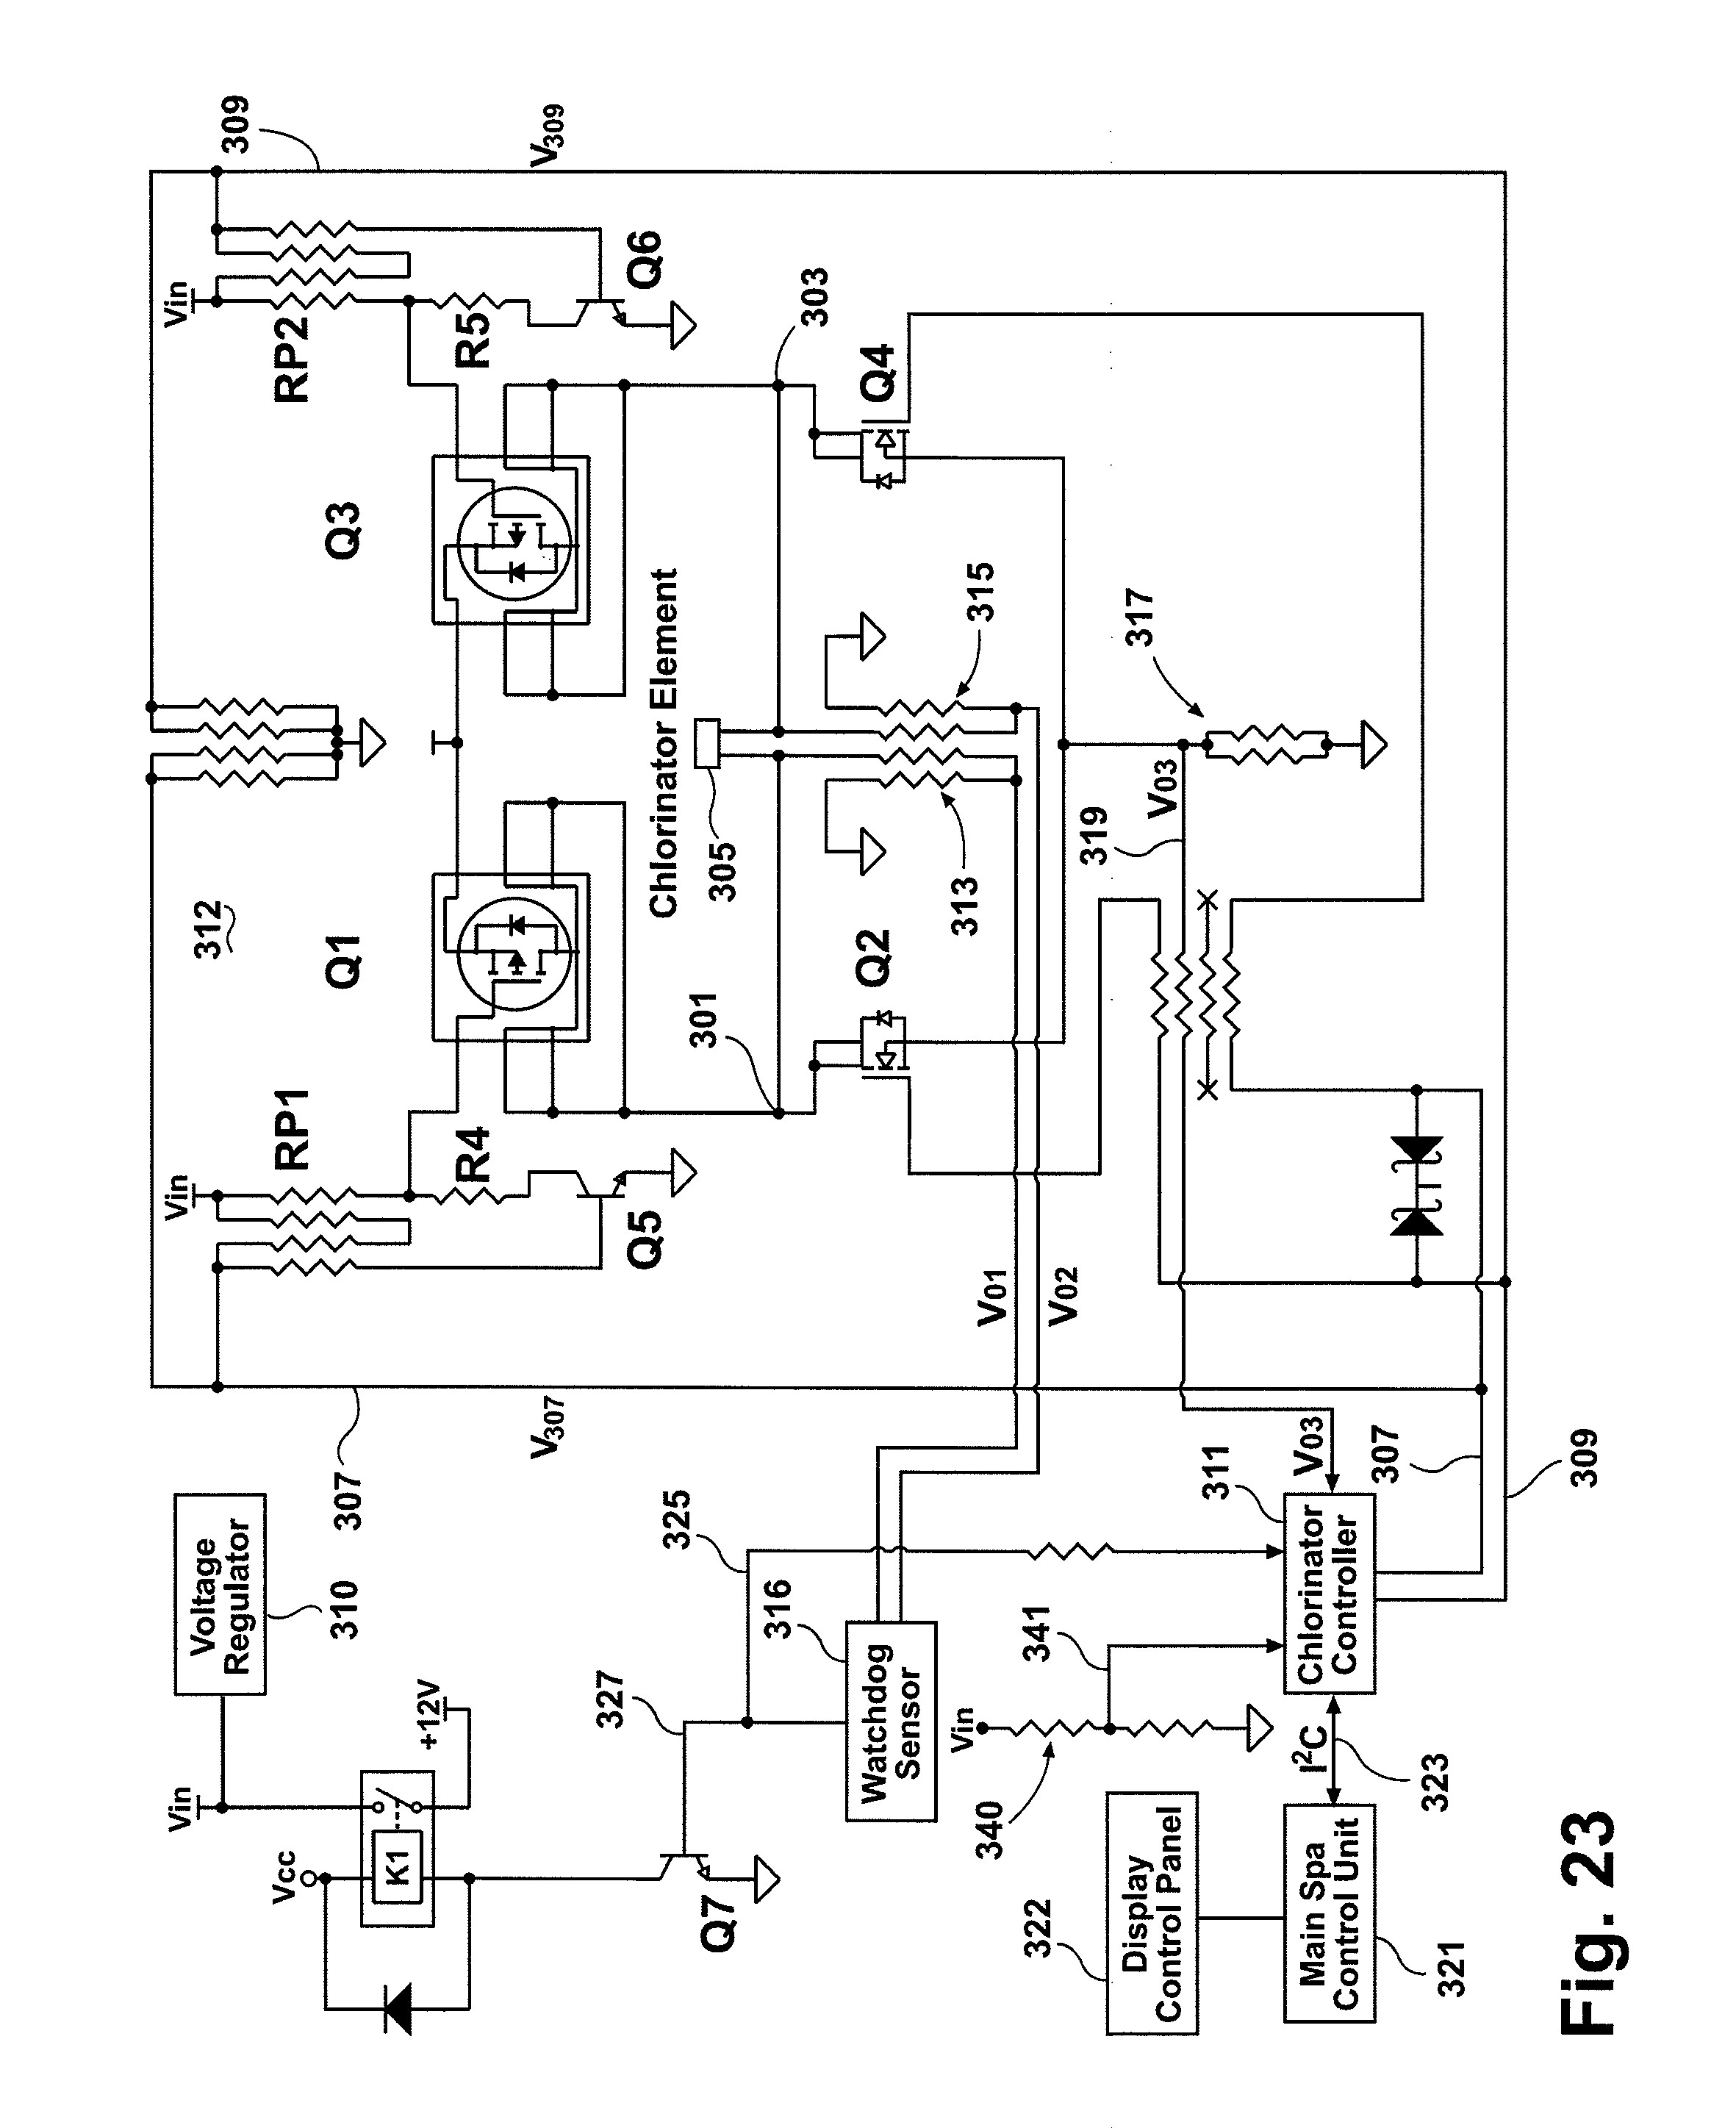 Grundfos Circulating Pump Wiring Diagram from wholefoodsonabudget.com